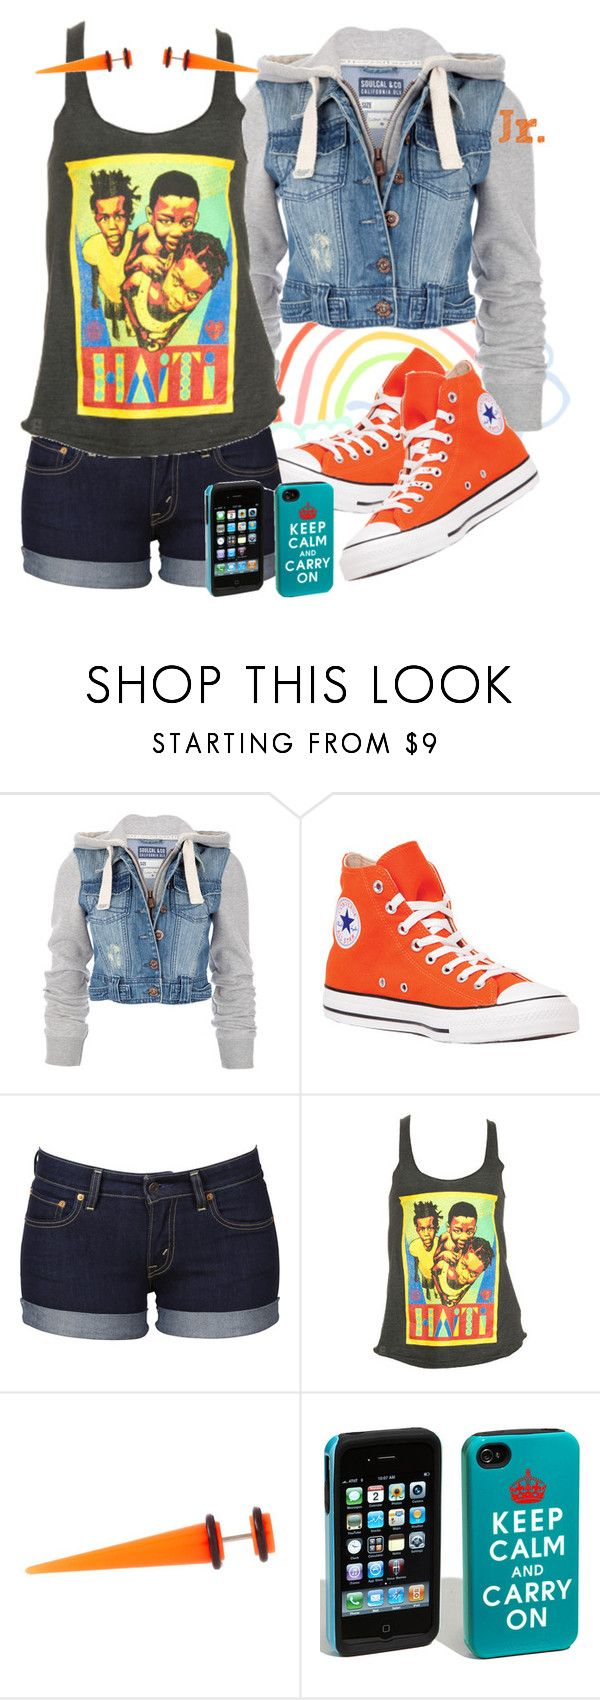 Haiti's Child. by firstbornunicorn on Polyvore featuring OBEY Clothing, Soul Cal, Levi's, Converse, ASOS and Case-Mate